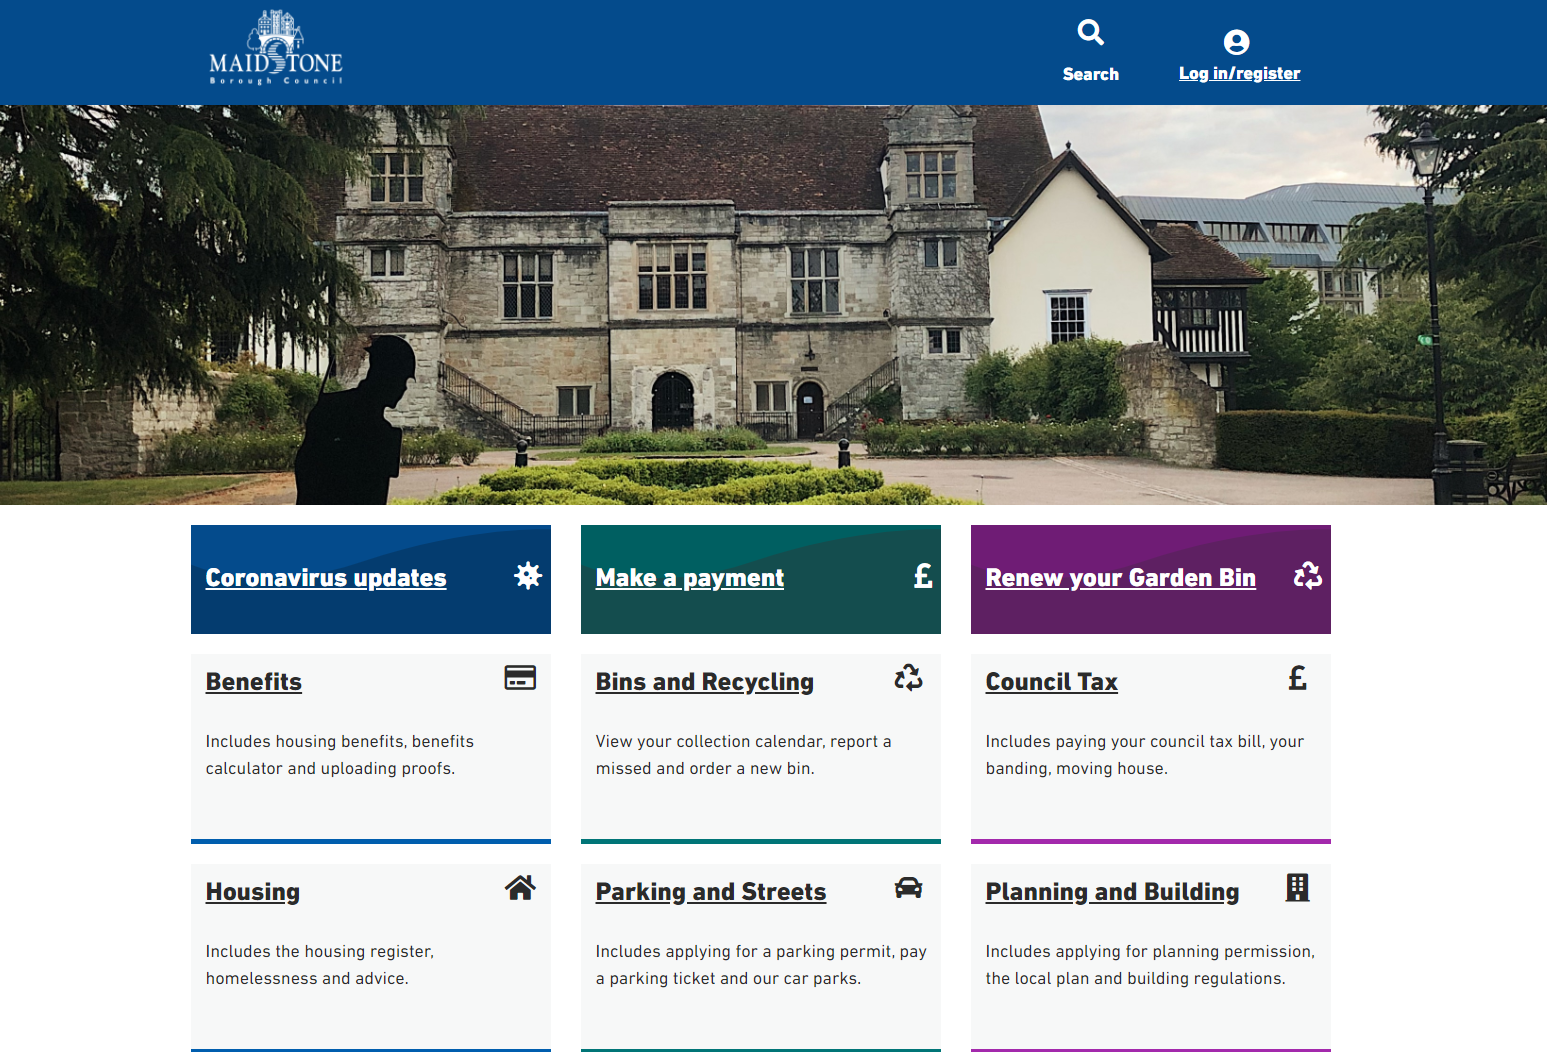 maidstone.gov.uk homepage